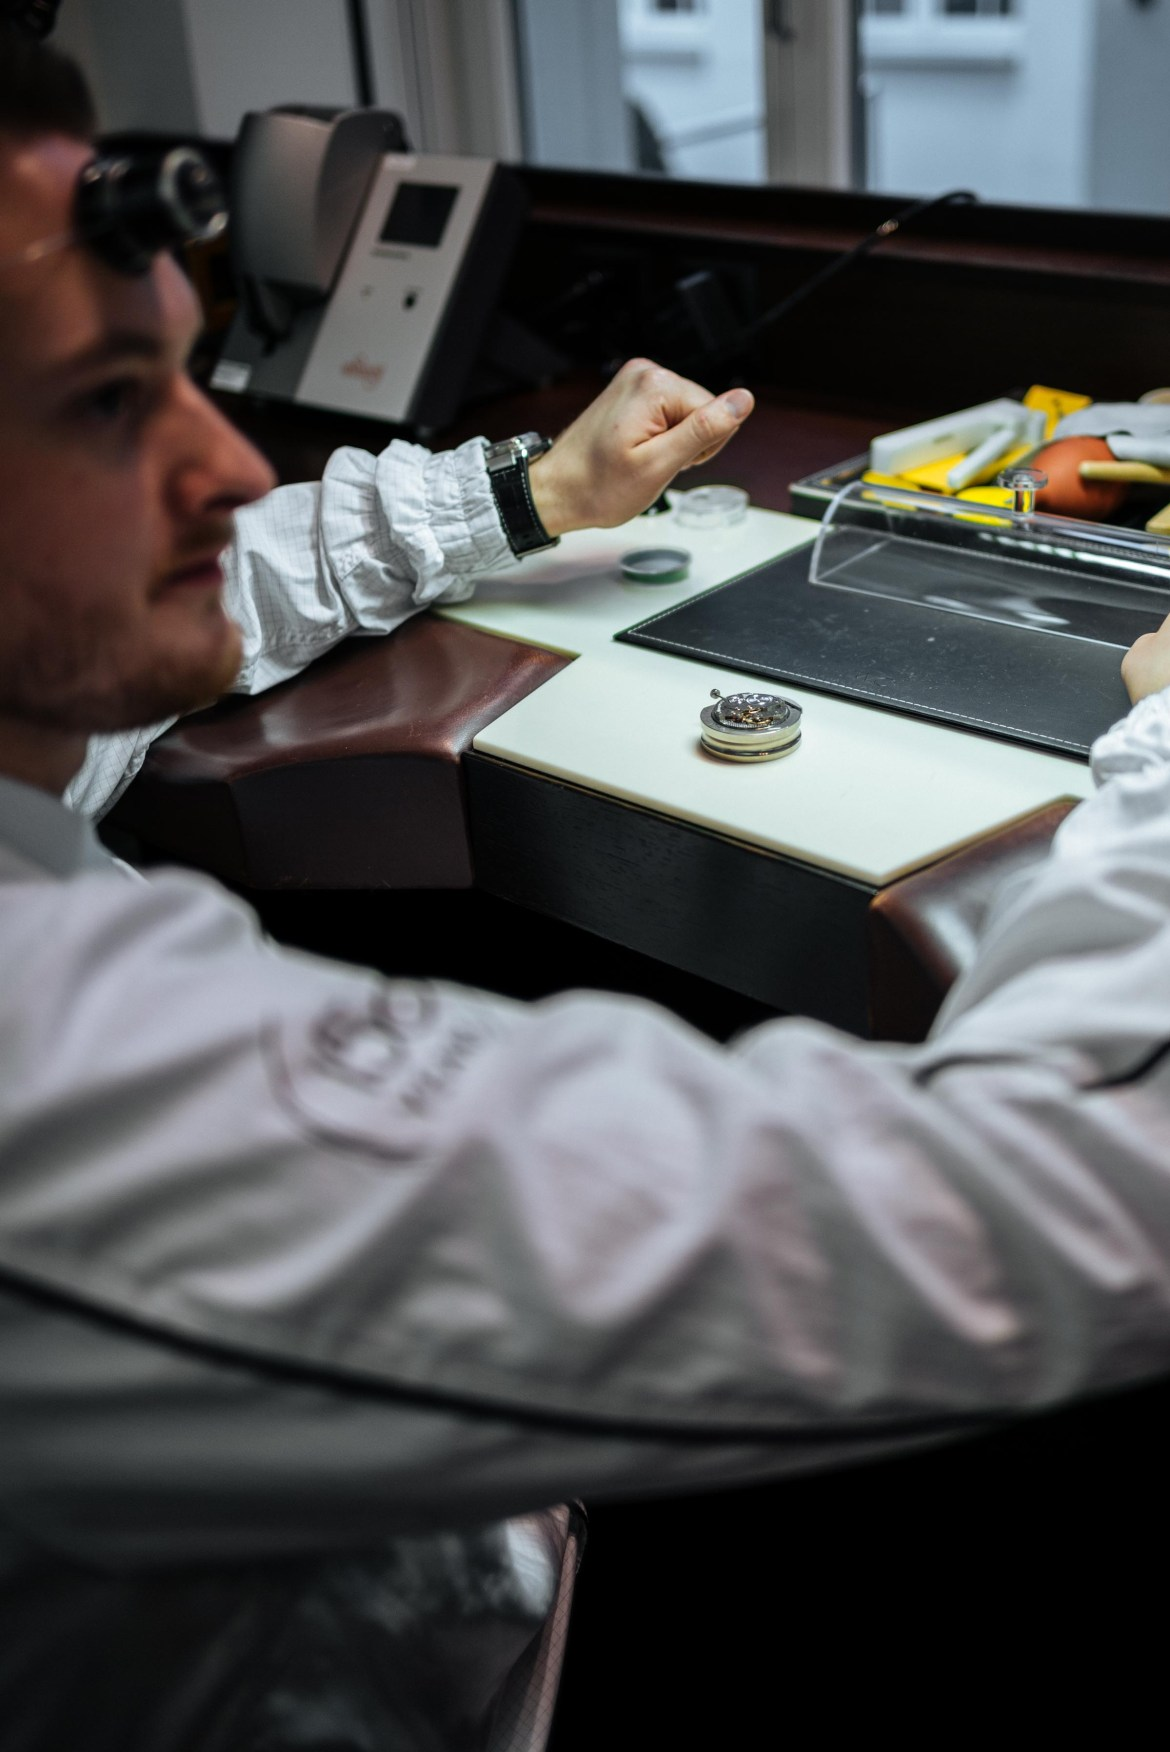 On Saturdays an IWC Watch maker is available to answer questions at the IWC museum in schaffhausen Switzerland